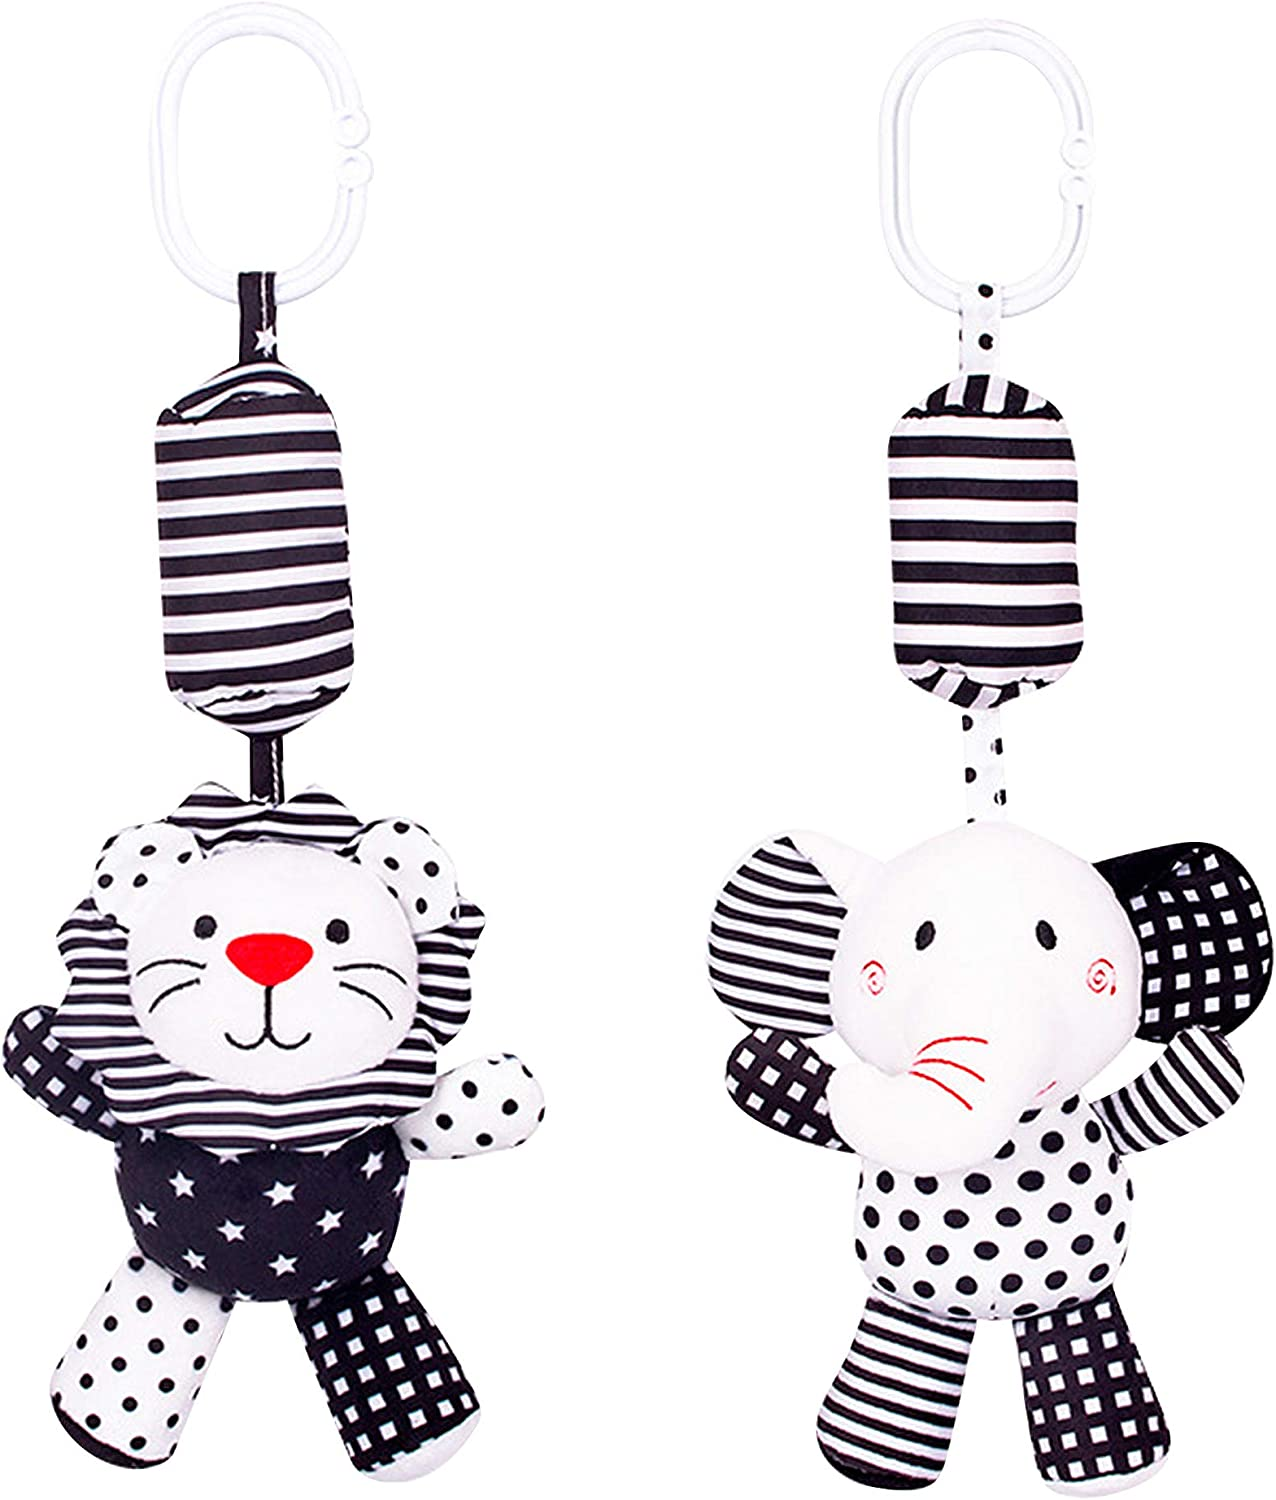 Baby Hanging Rattle Toys - Newborn Stroller Toys - Infant Crib Car Seat Toys - 3 6 9 12 Months Baby Rattles - Baby Gift - Soft Plush Toys with Wind Chimes 2 Pack